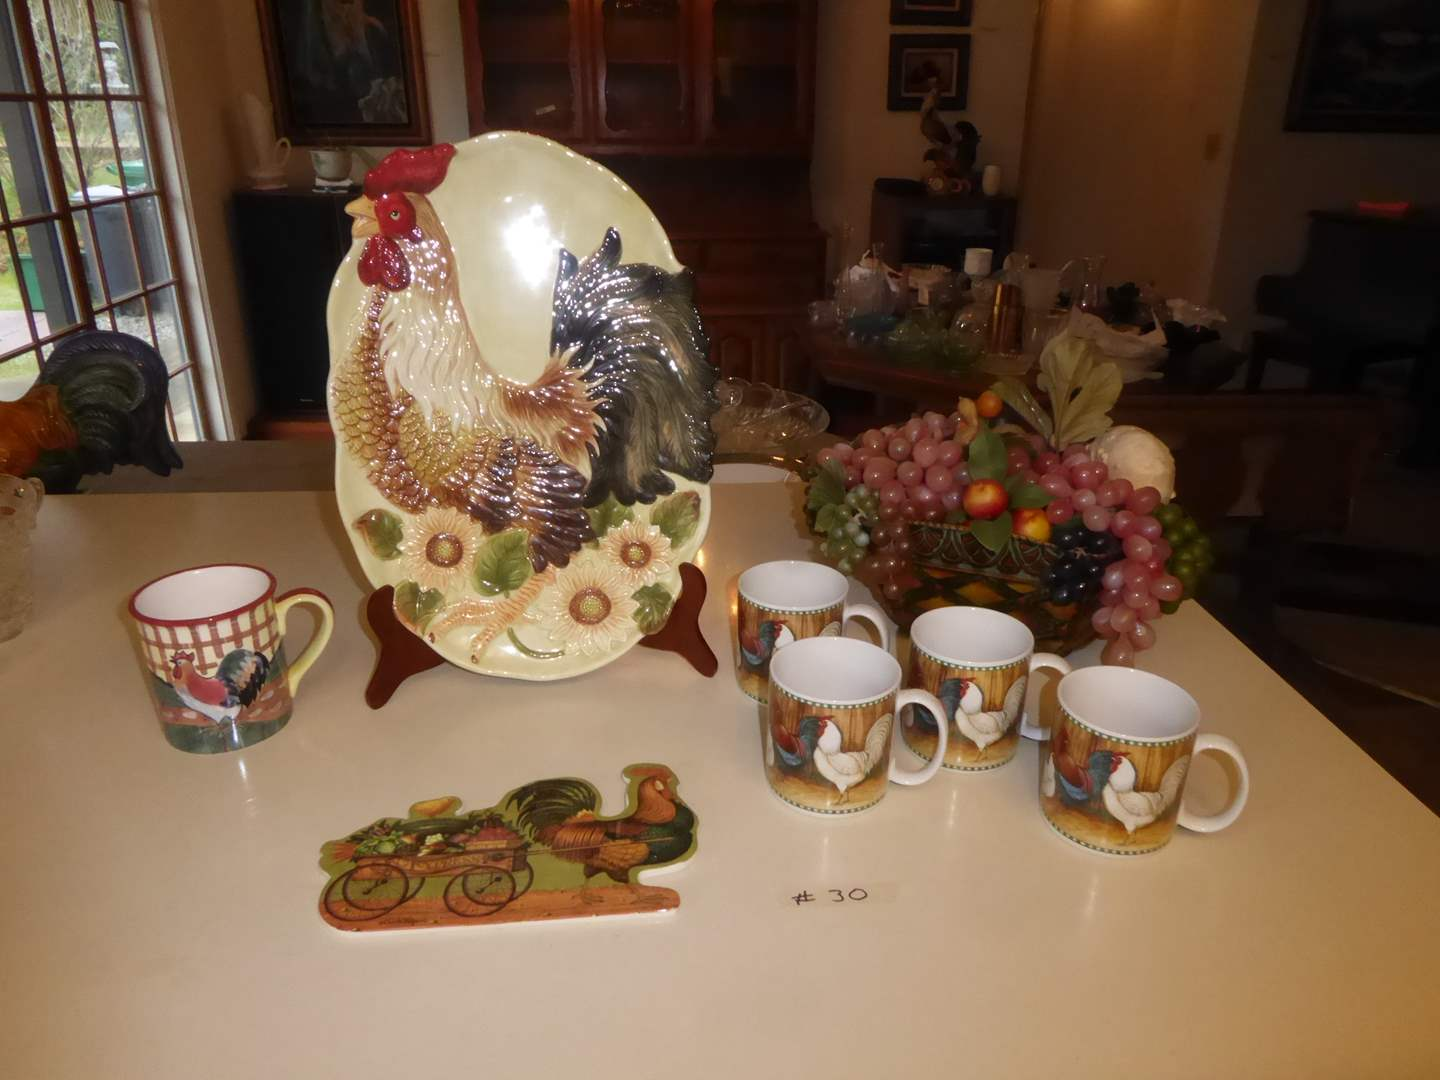 Lot # 30 - Ceramic Rooster Plate & Stand, Rooster Mugs & Other Decor  (main image)